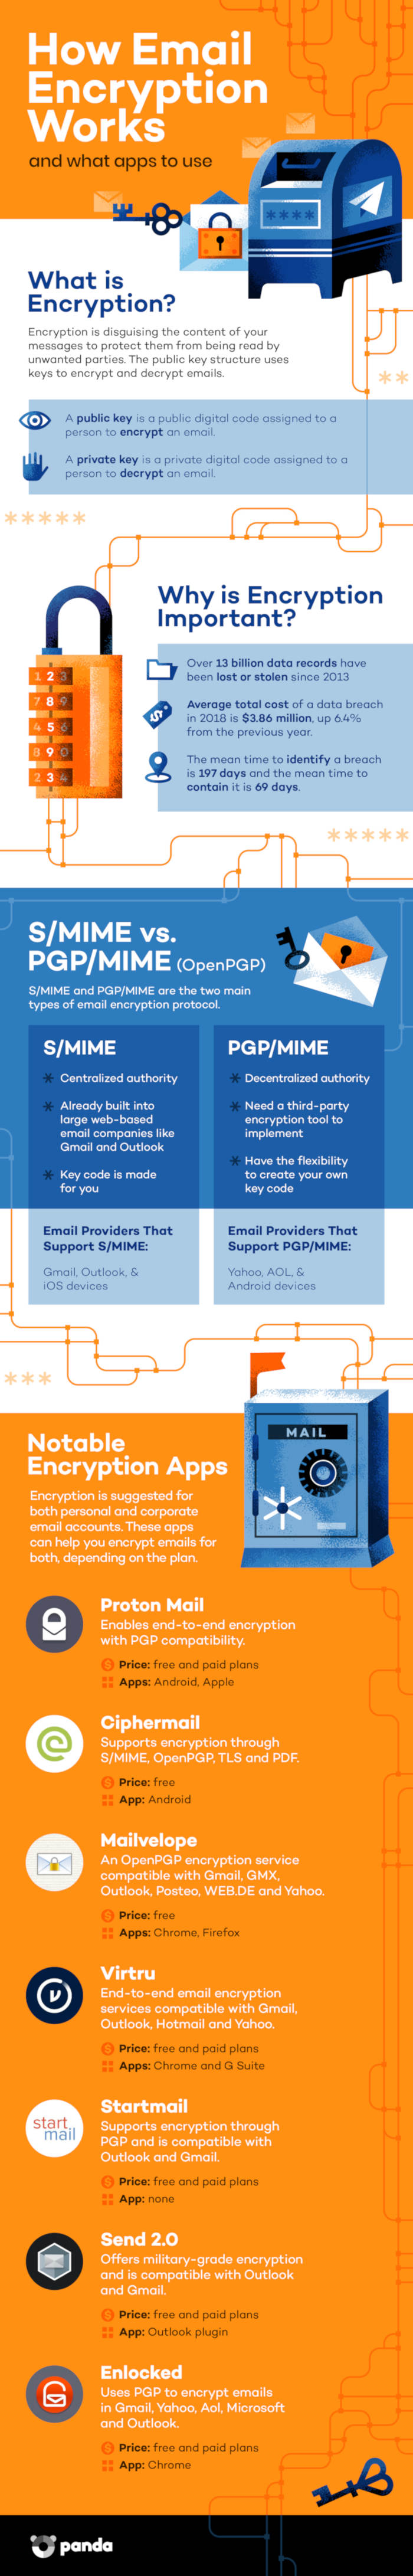 How to Encrypt Your Emails (No Matter Who Your Provider Is) [Infographic]